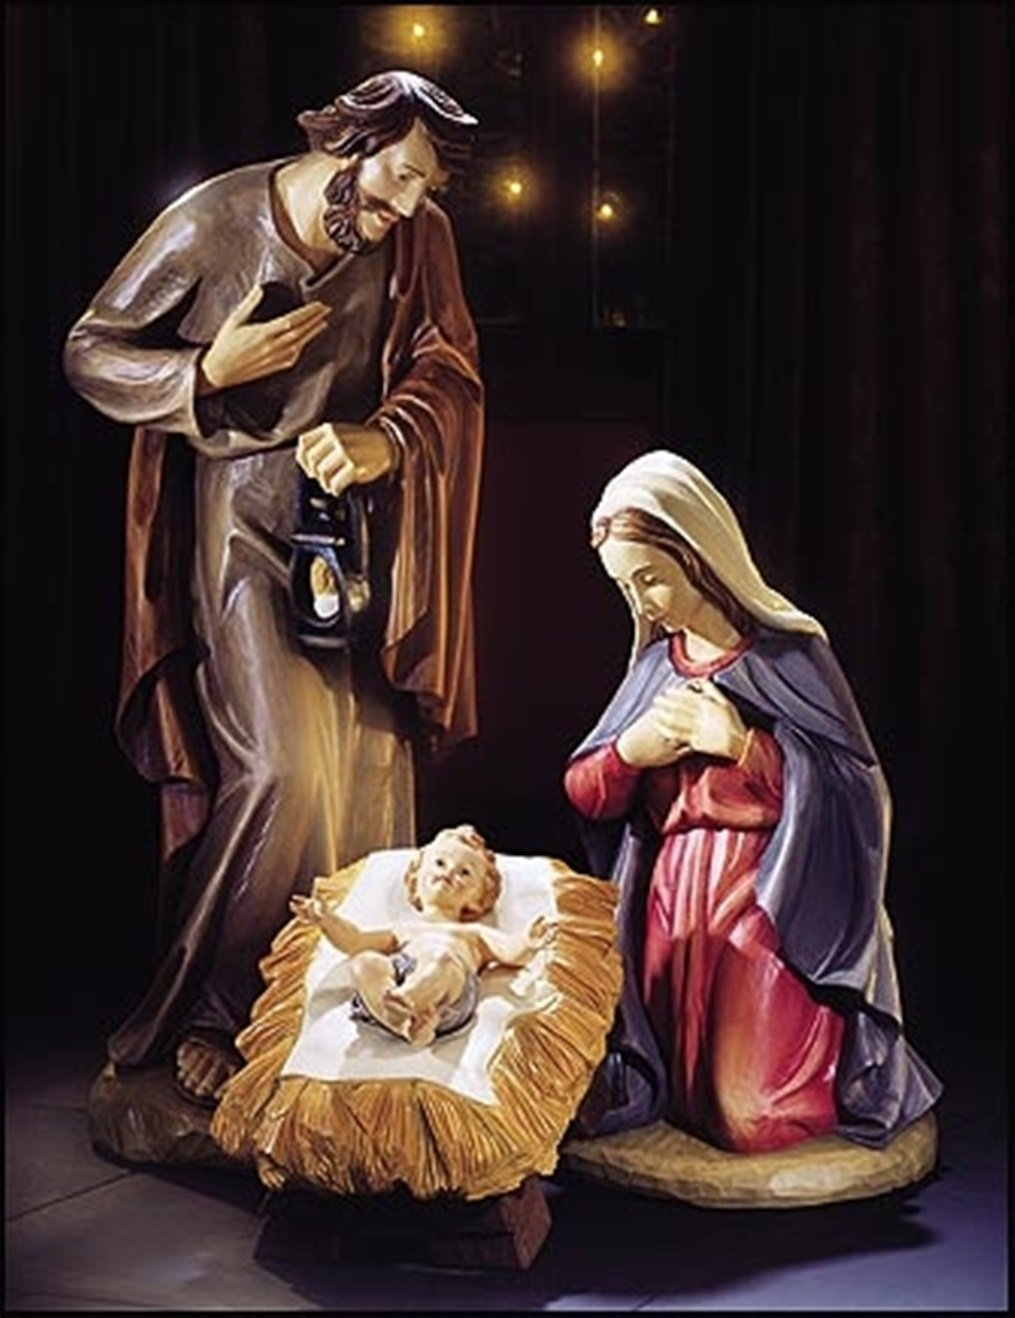 Joseph Mary and Baby Jesus 3 Piece Nativity Set 40'' Statues for Christmas Display by Christian Brands Catholic